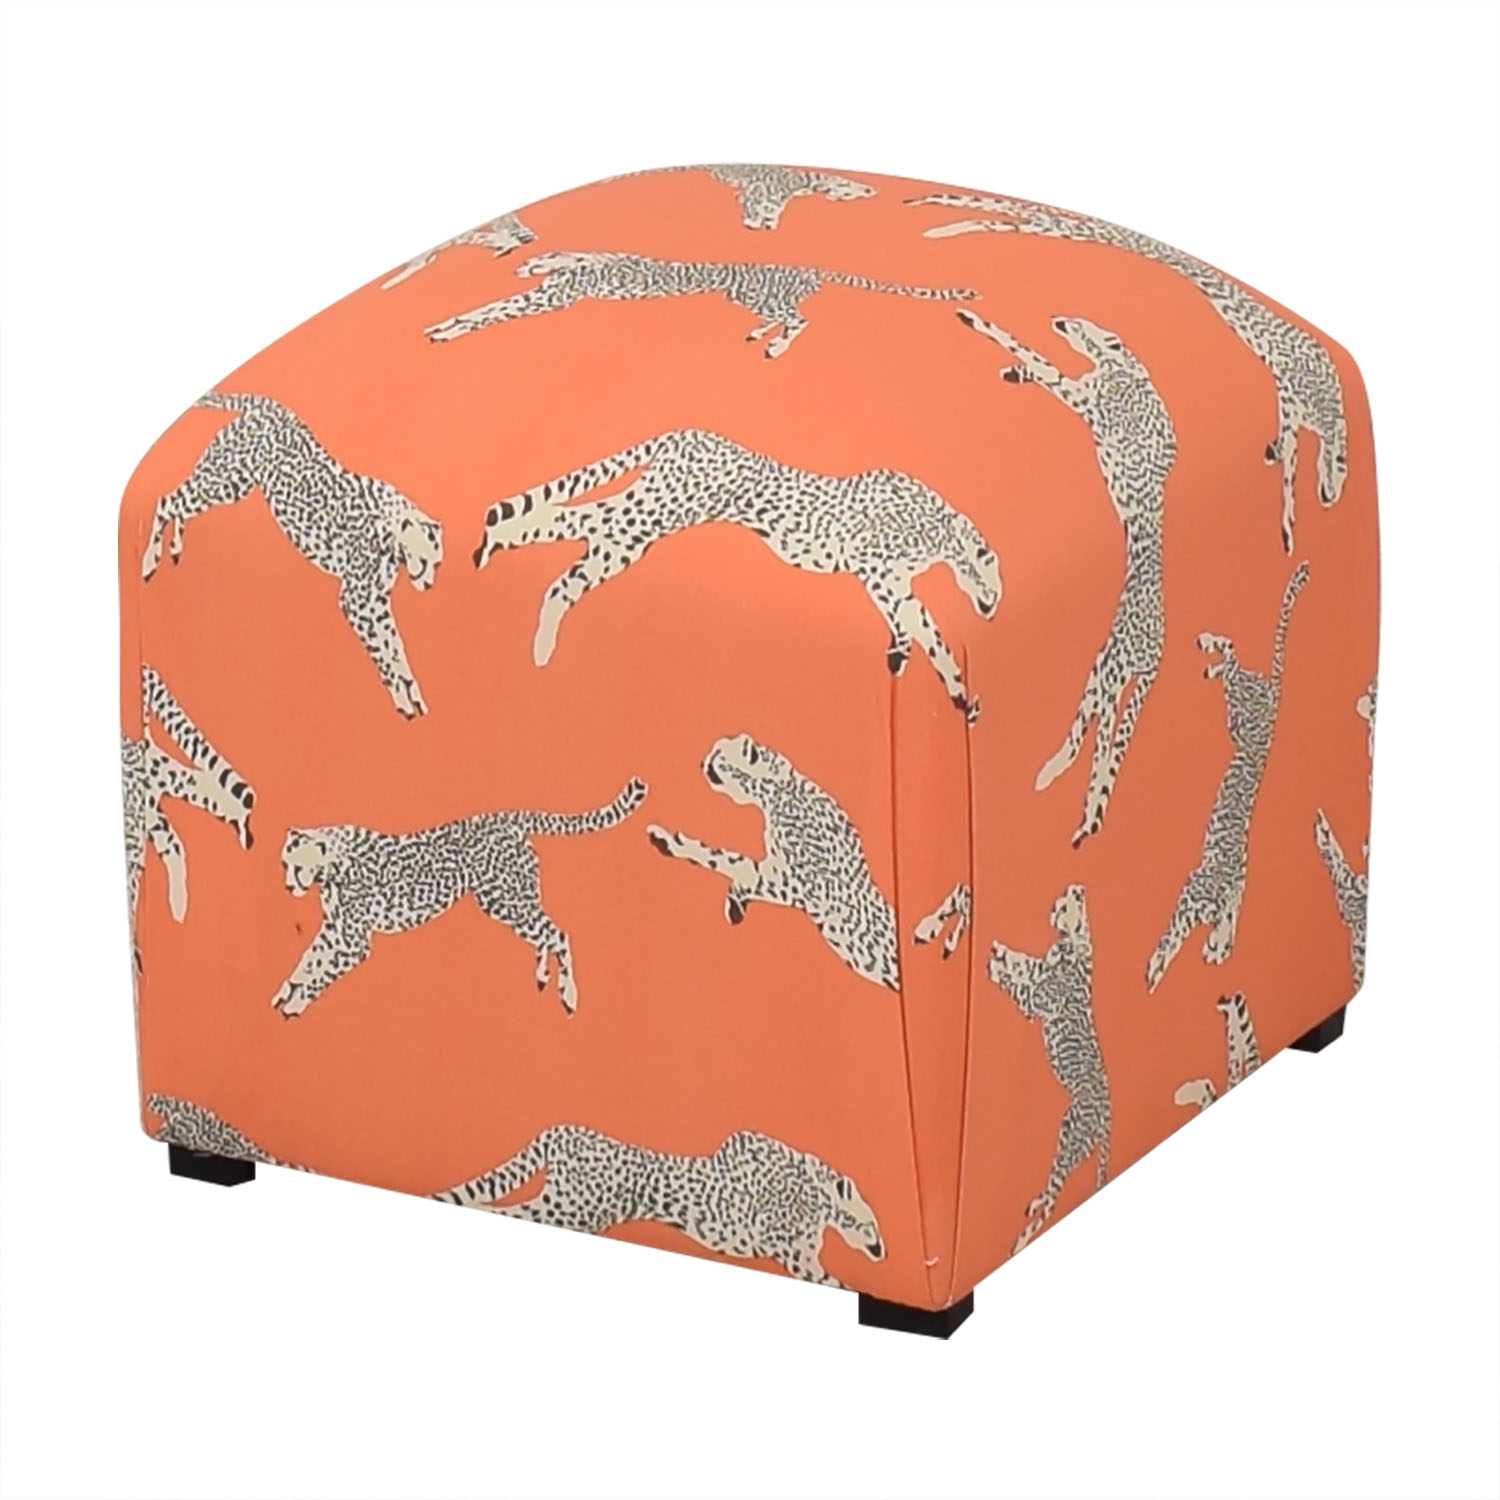 The Inside Deco Ottoman / Chairs